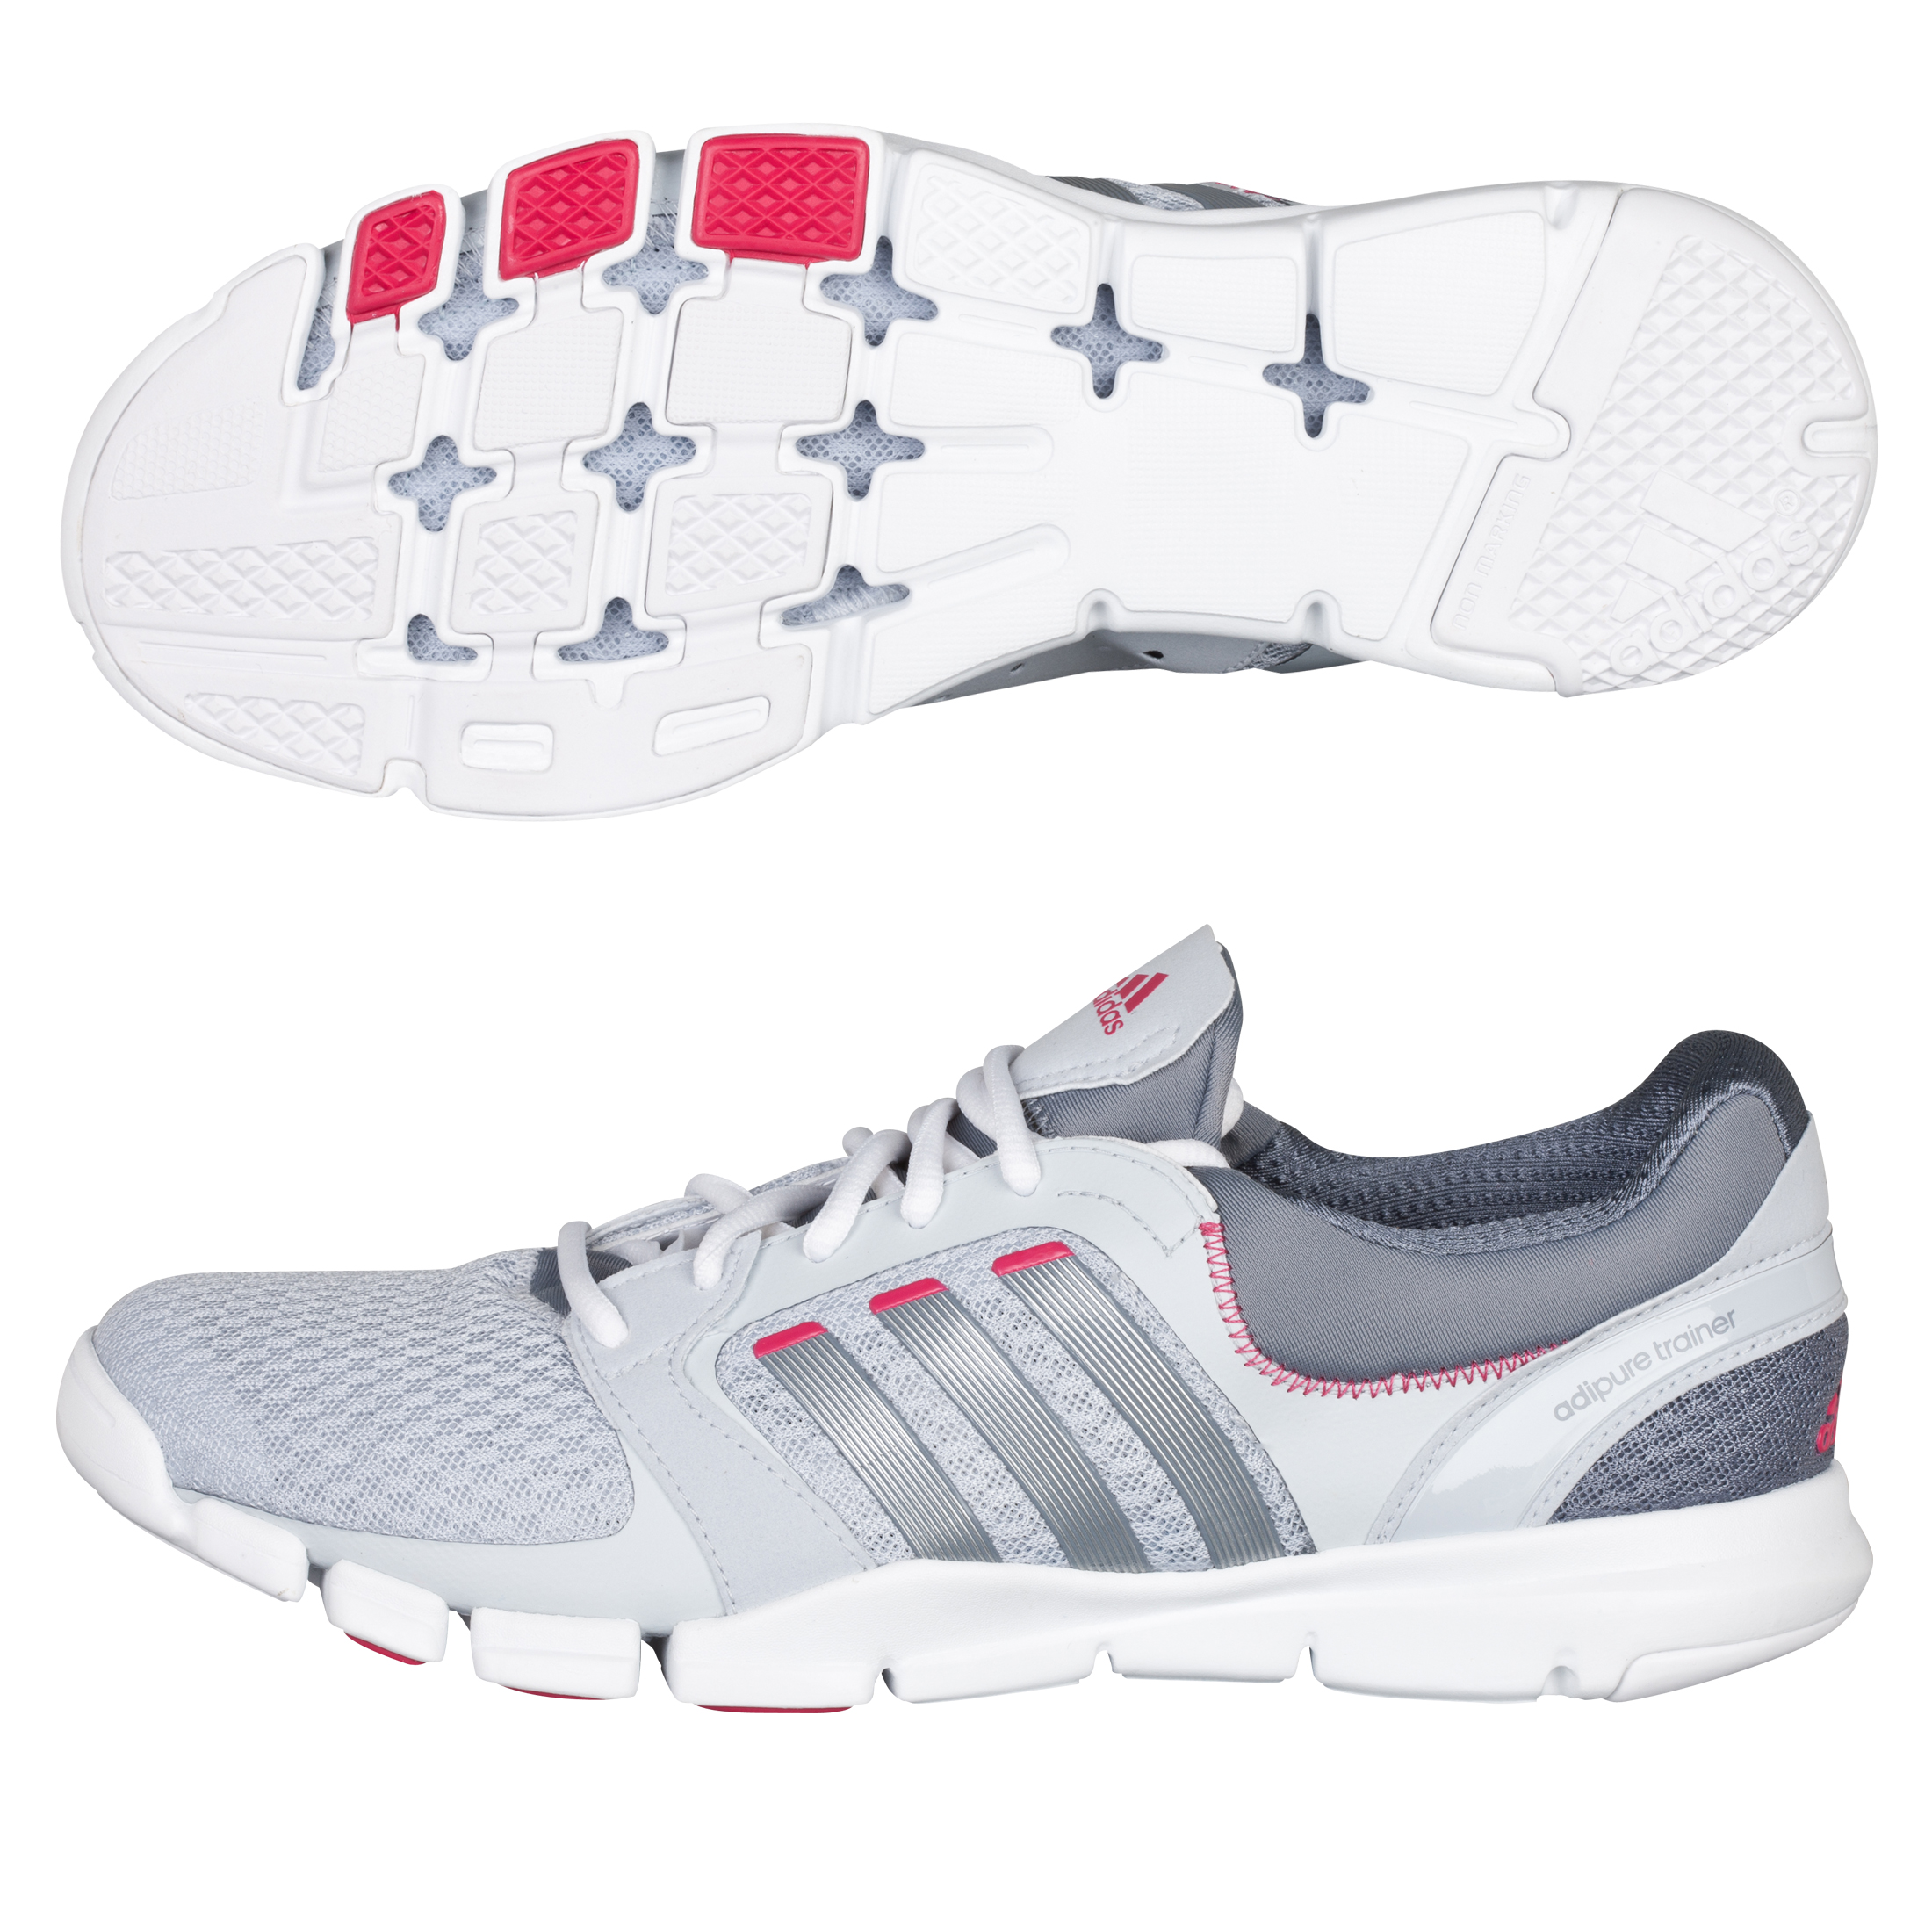 Adidas adipure Trainer 360 - Grey/Bright Pink - Womens